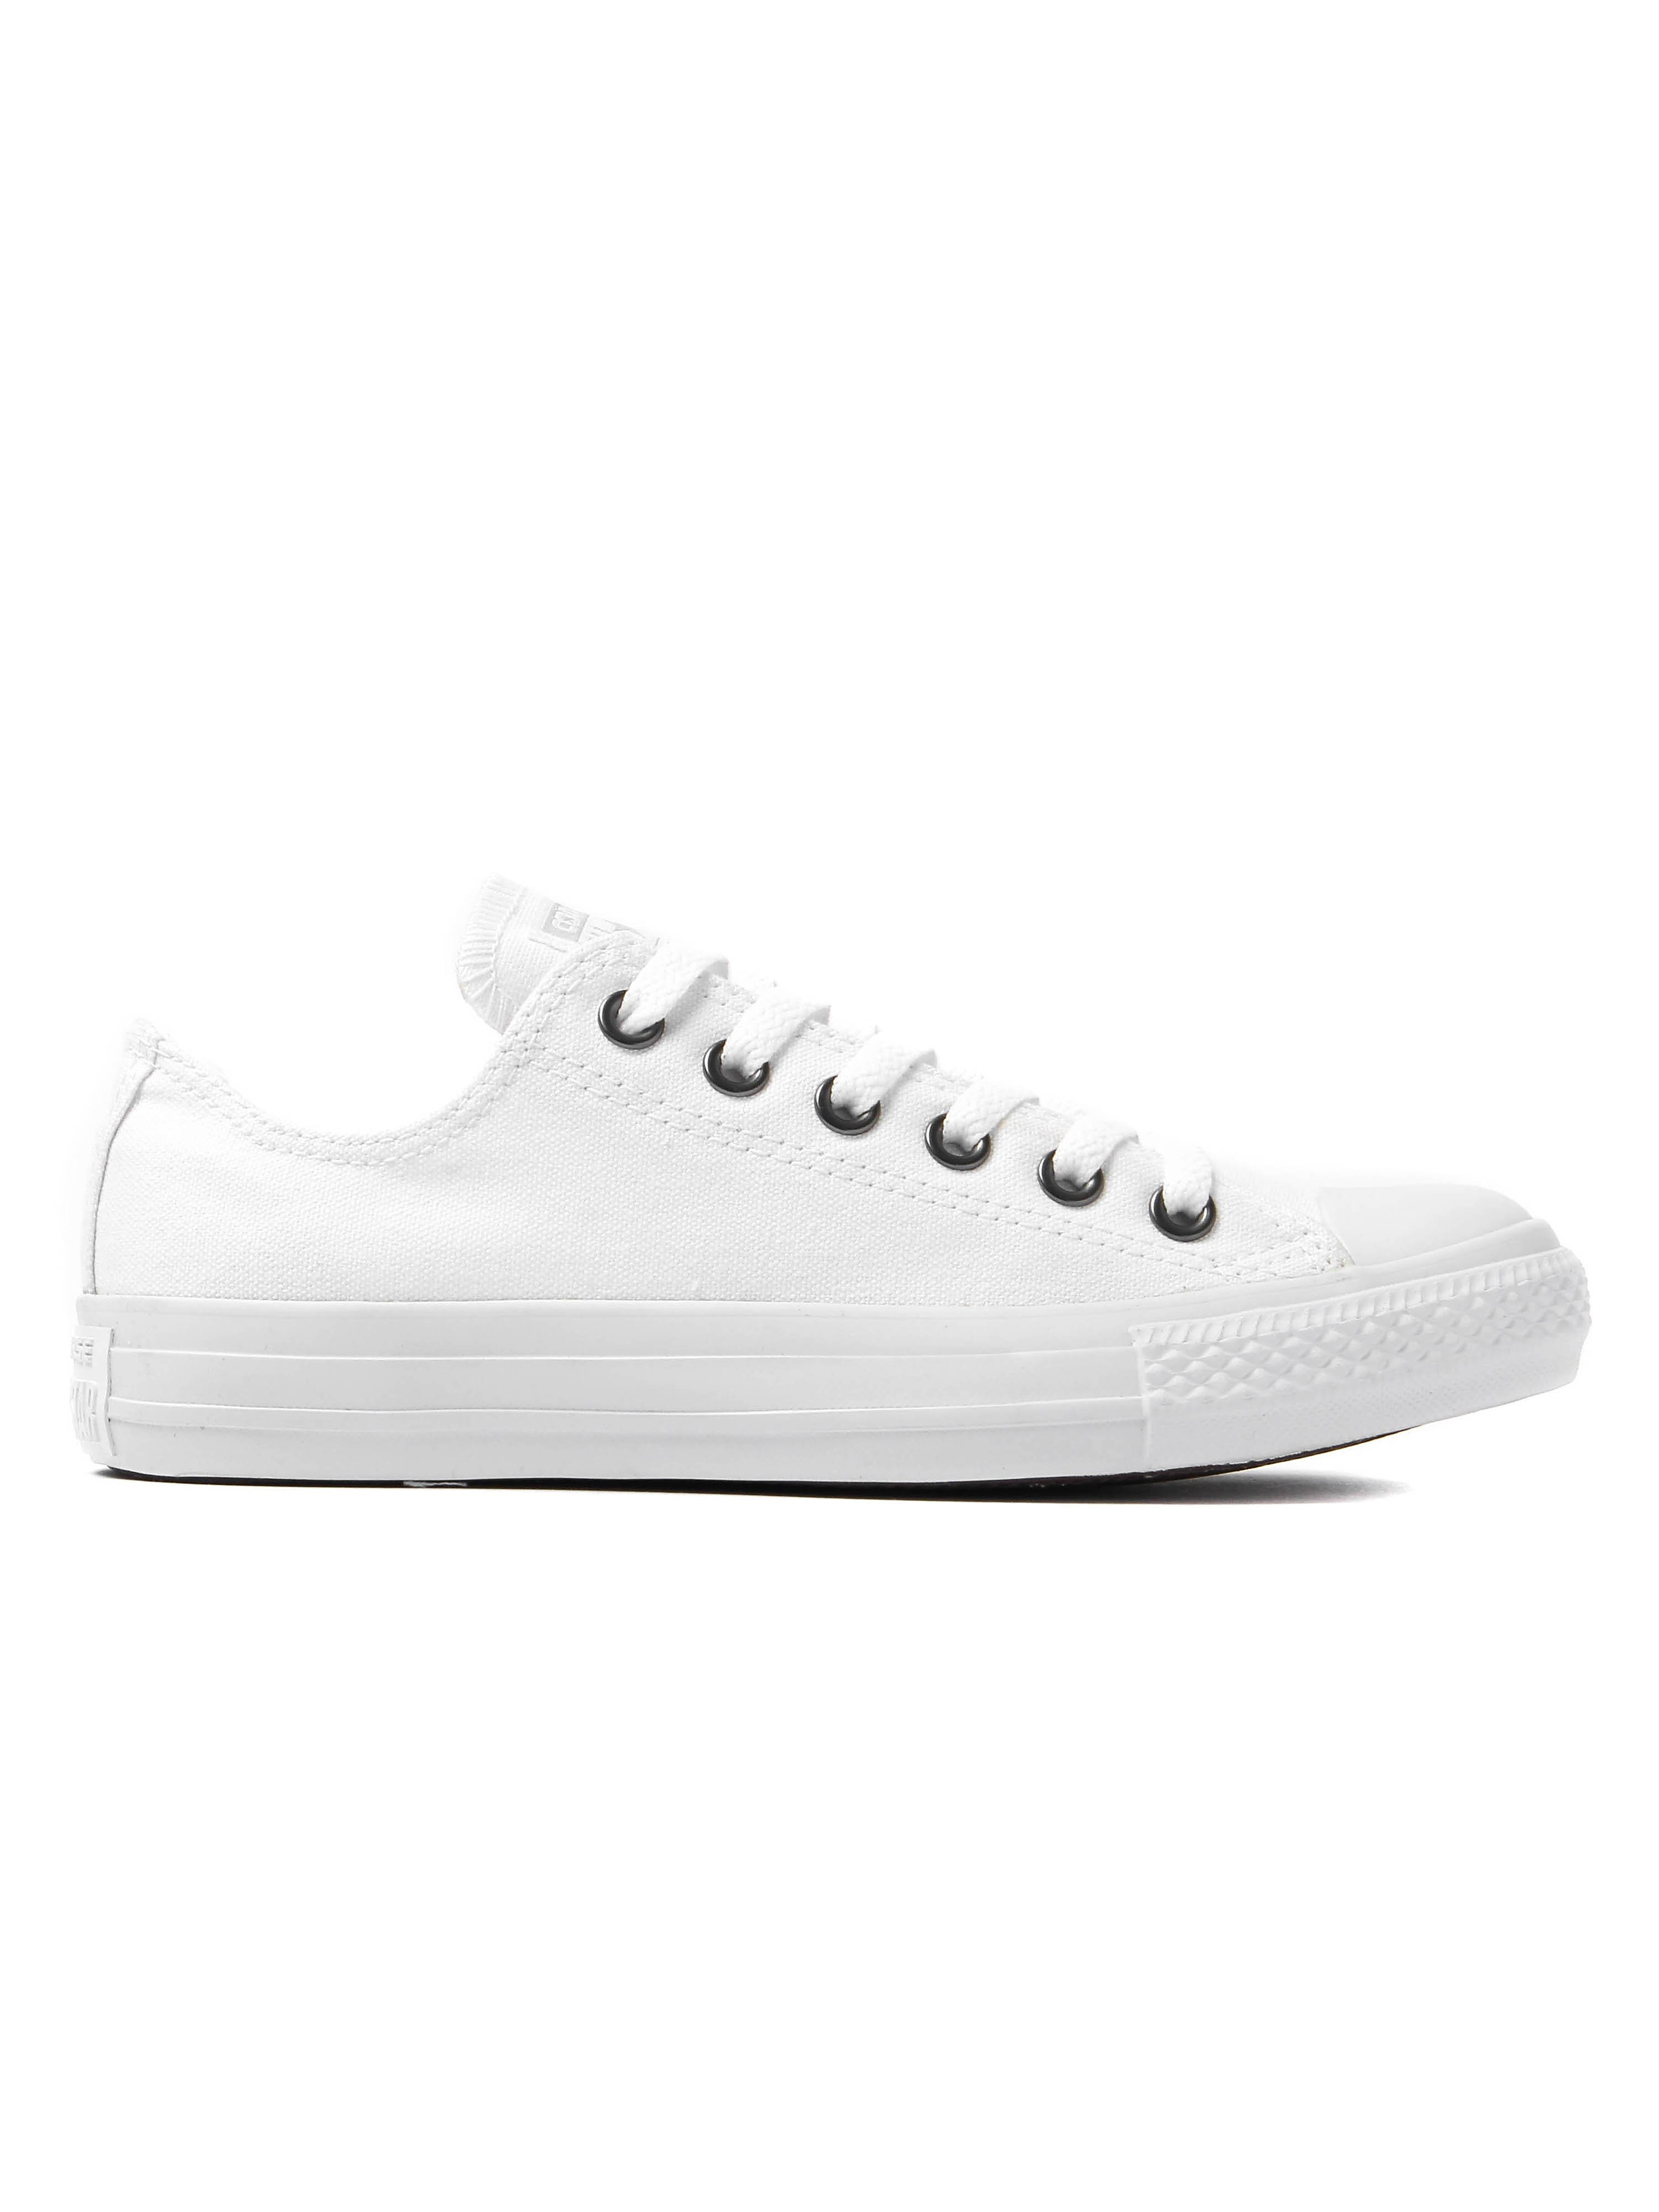 Converse Women's Chuck Taylor All Star OX Trainers - White Monoch